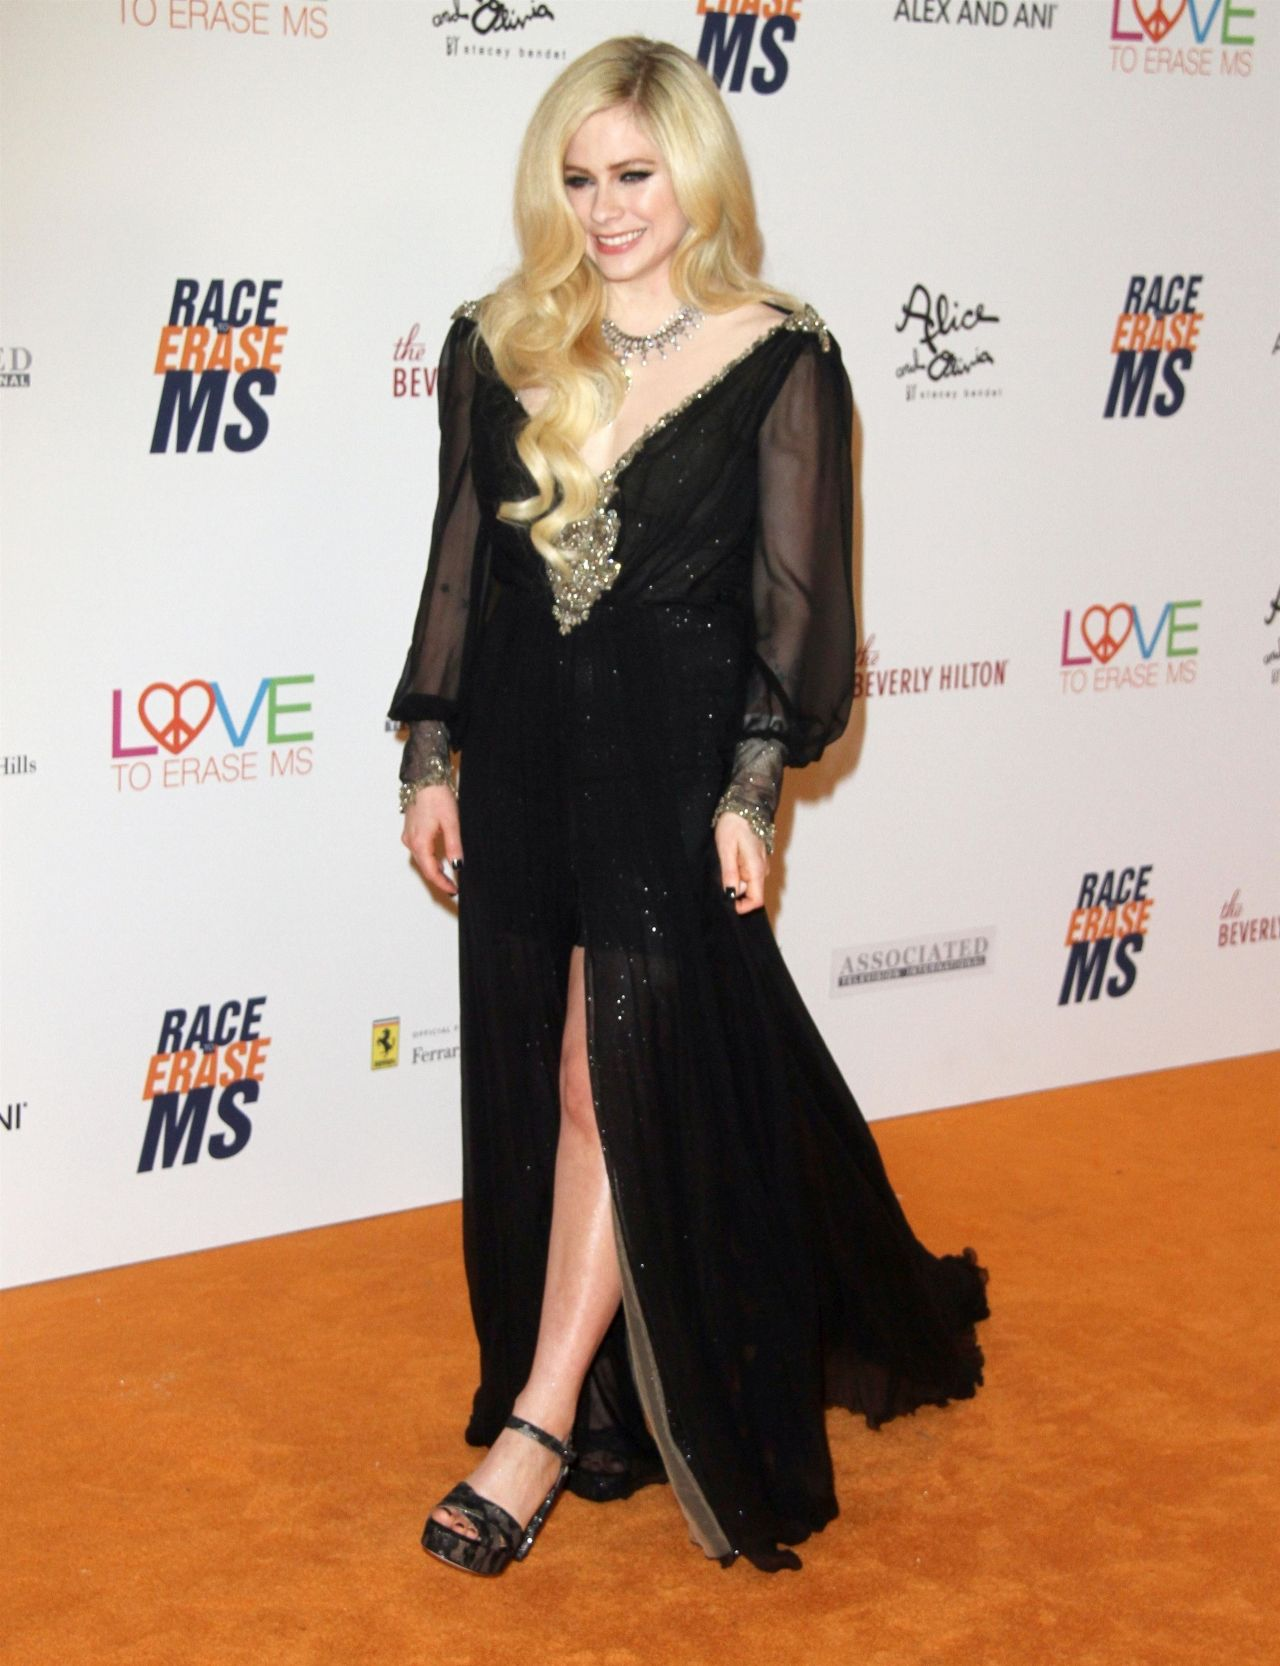 http://celebmafia.com/wp-content/uploads/2018/04/avril-lavigne-2018-race-to-erase-ms-gala-in-beverly-hills-7.jpg